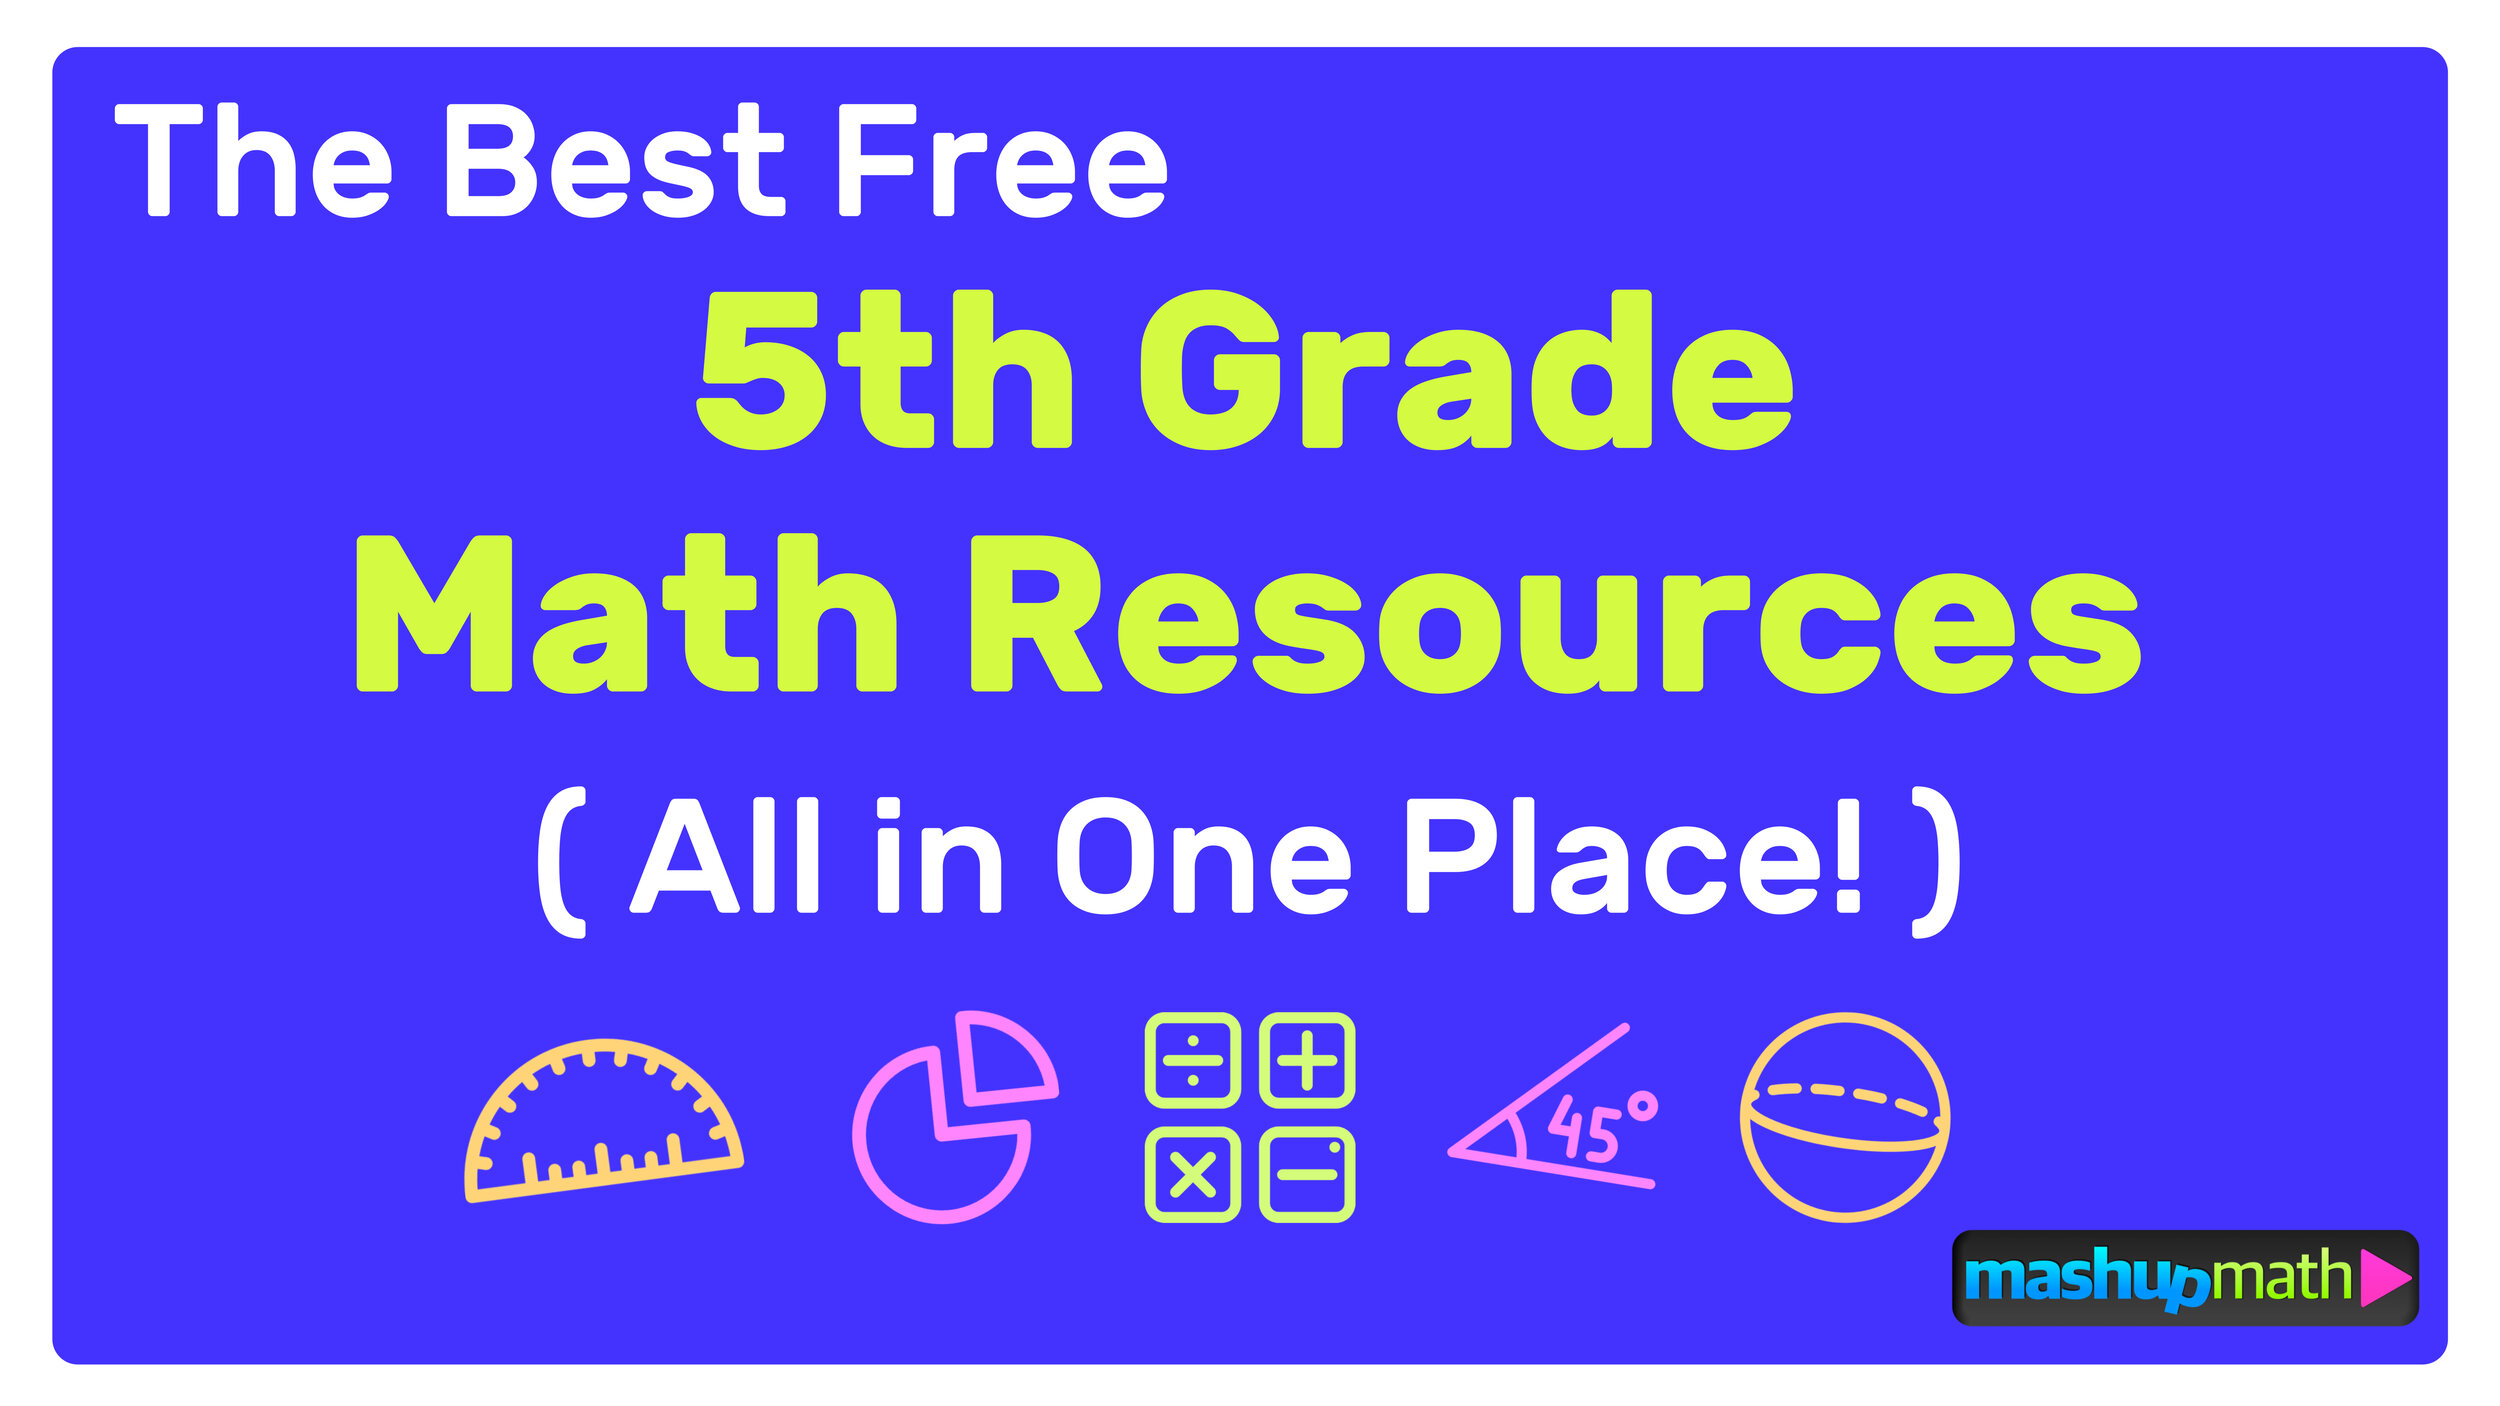 The Best Free 5th Grade Math Resources: Complete List! — Mashup Math